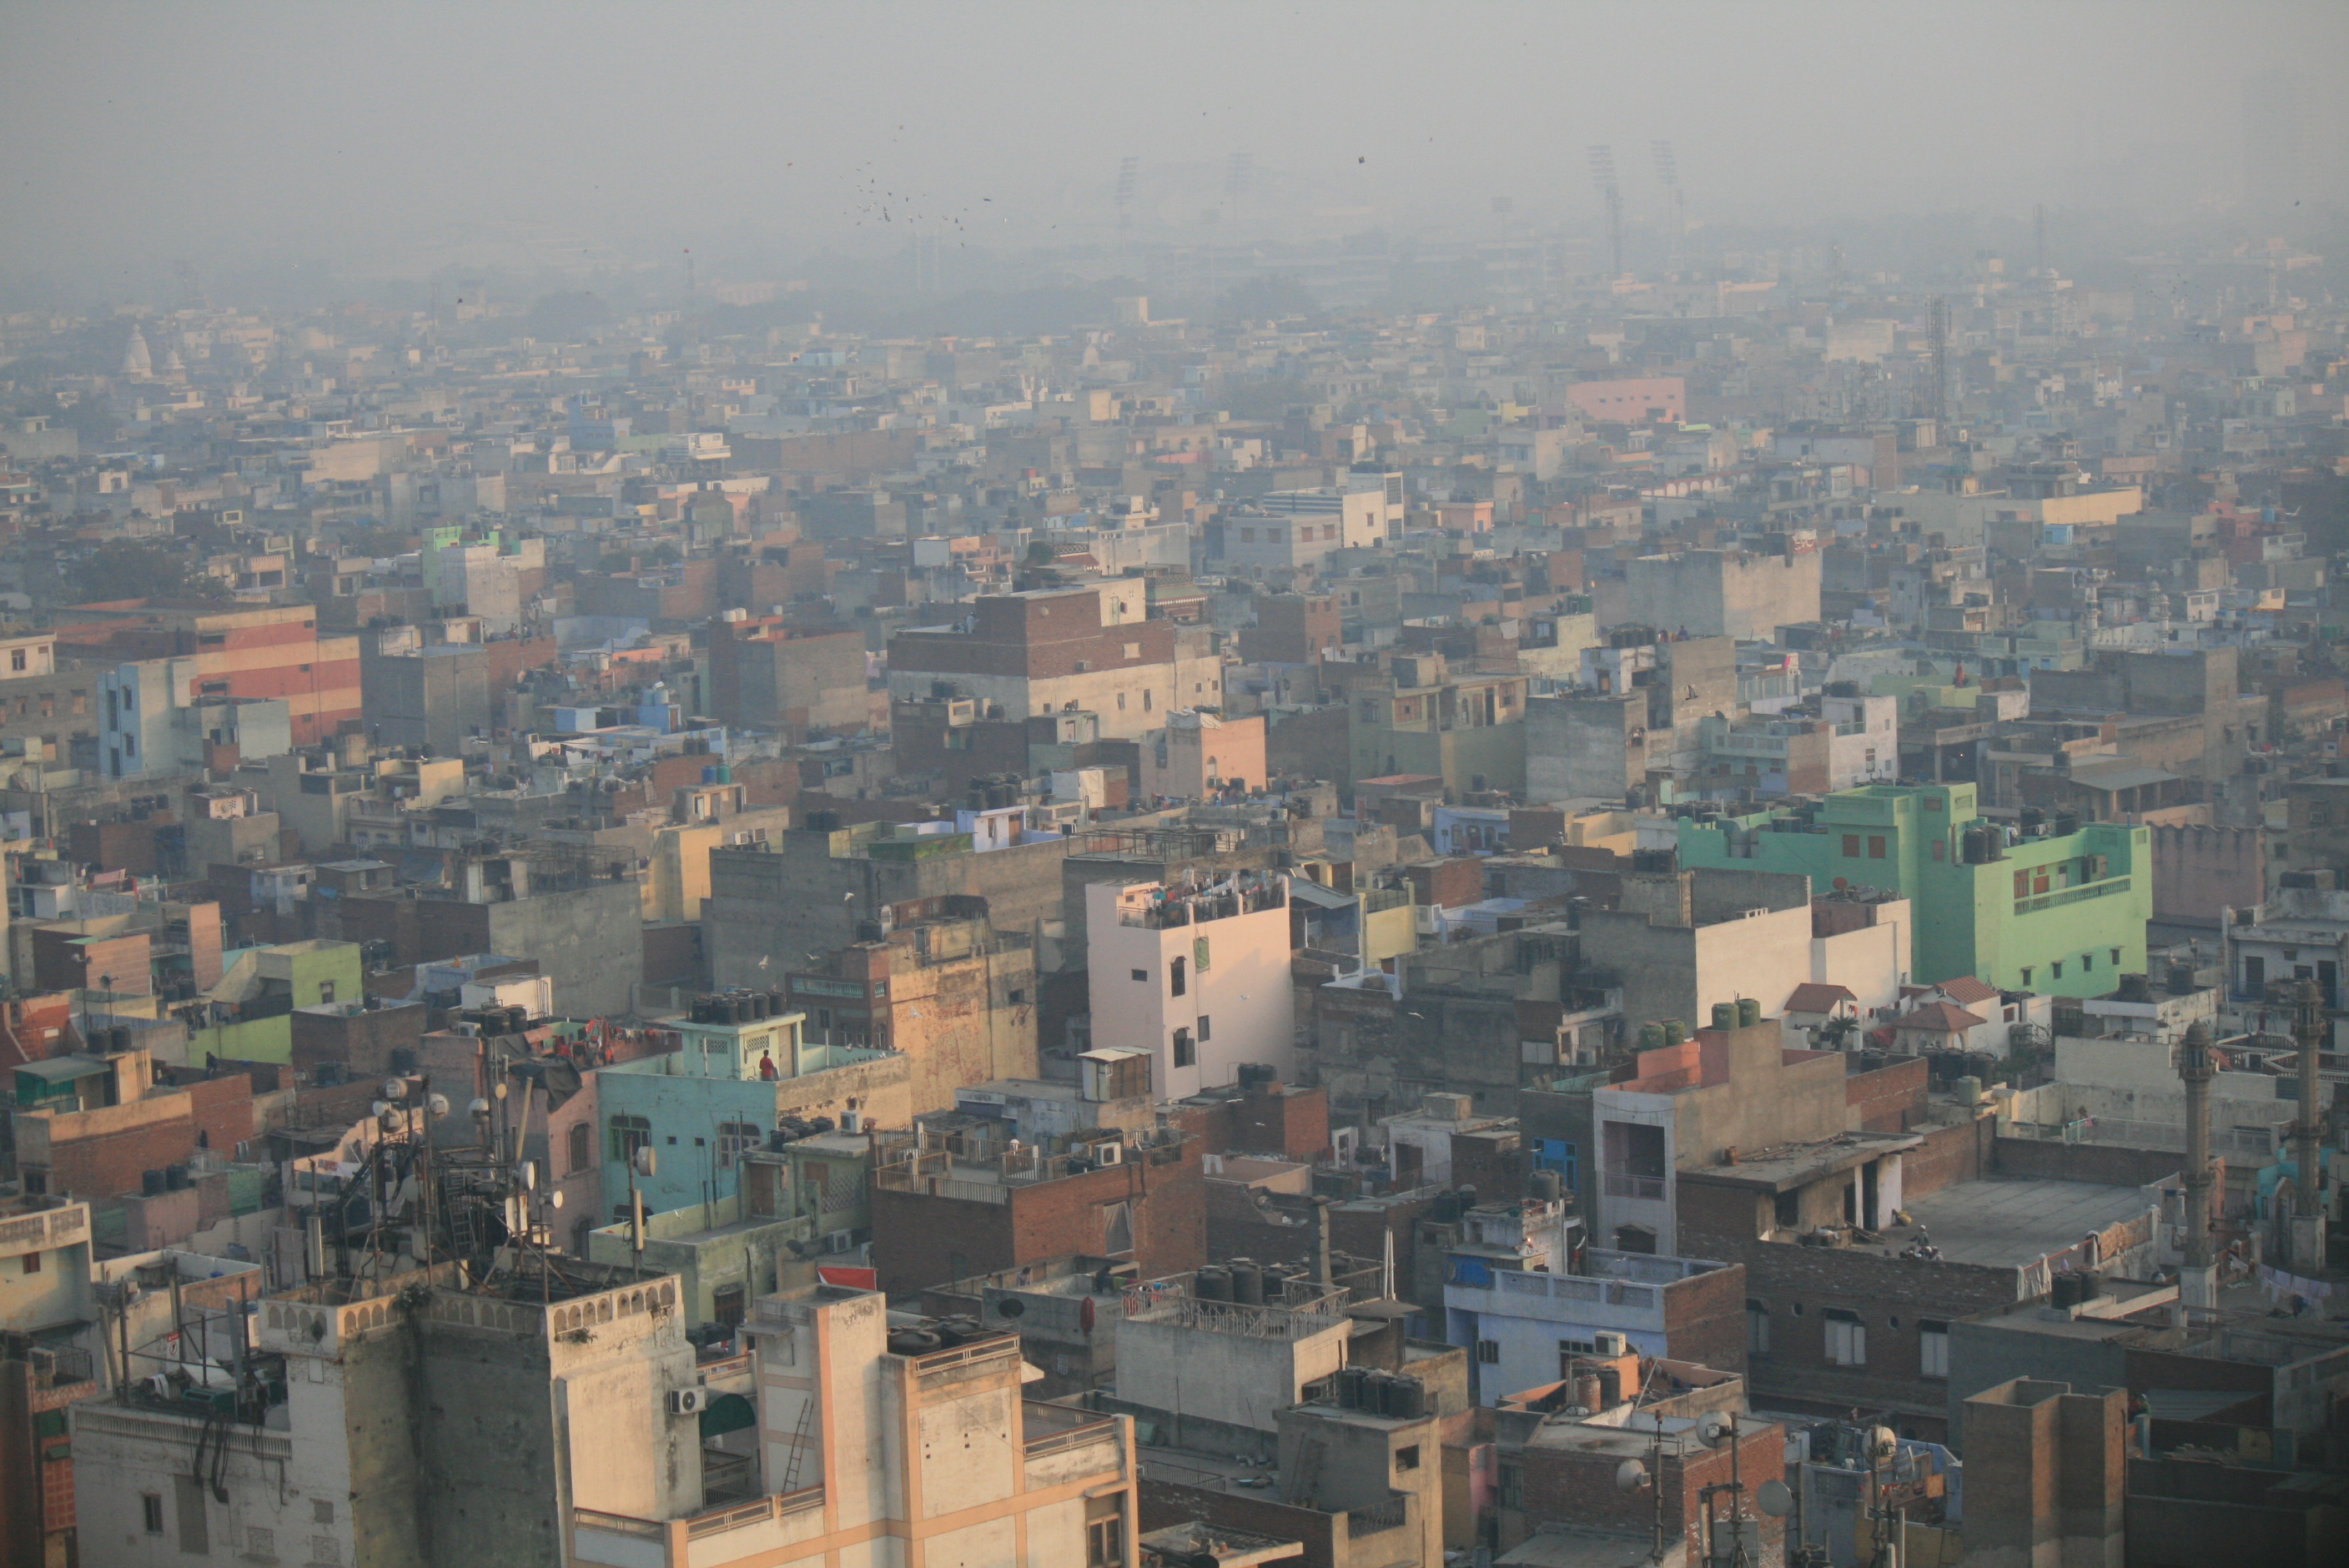 Air pollution over South Delhi. (Photo: Jean-Etienne Minh-Duy Poirrier/Flickr)